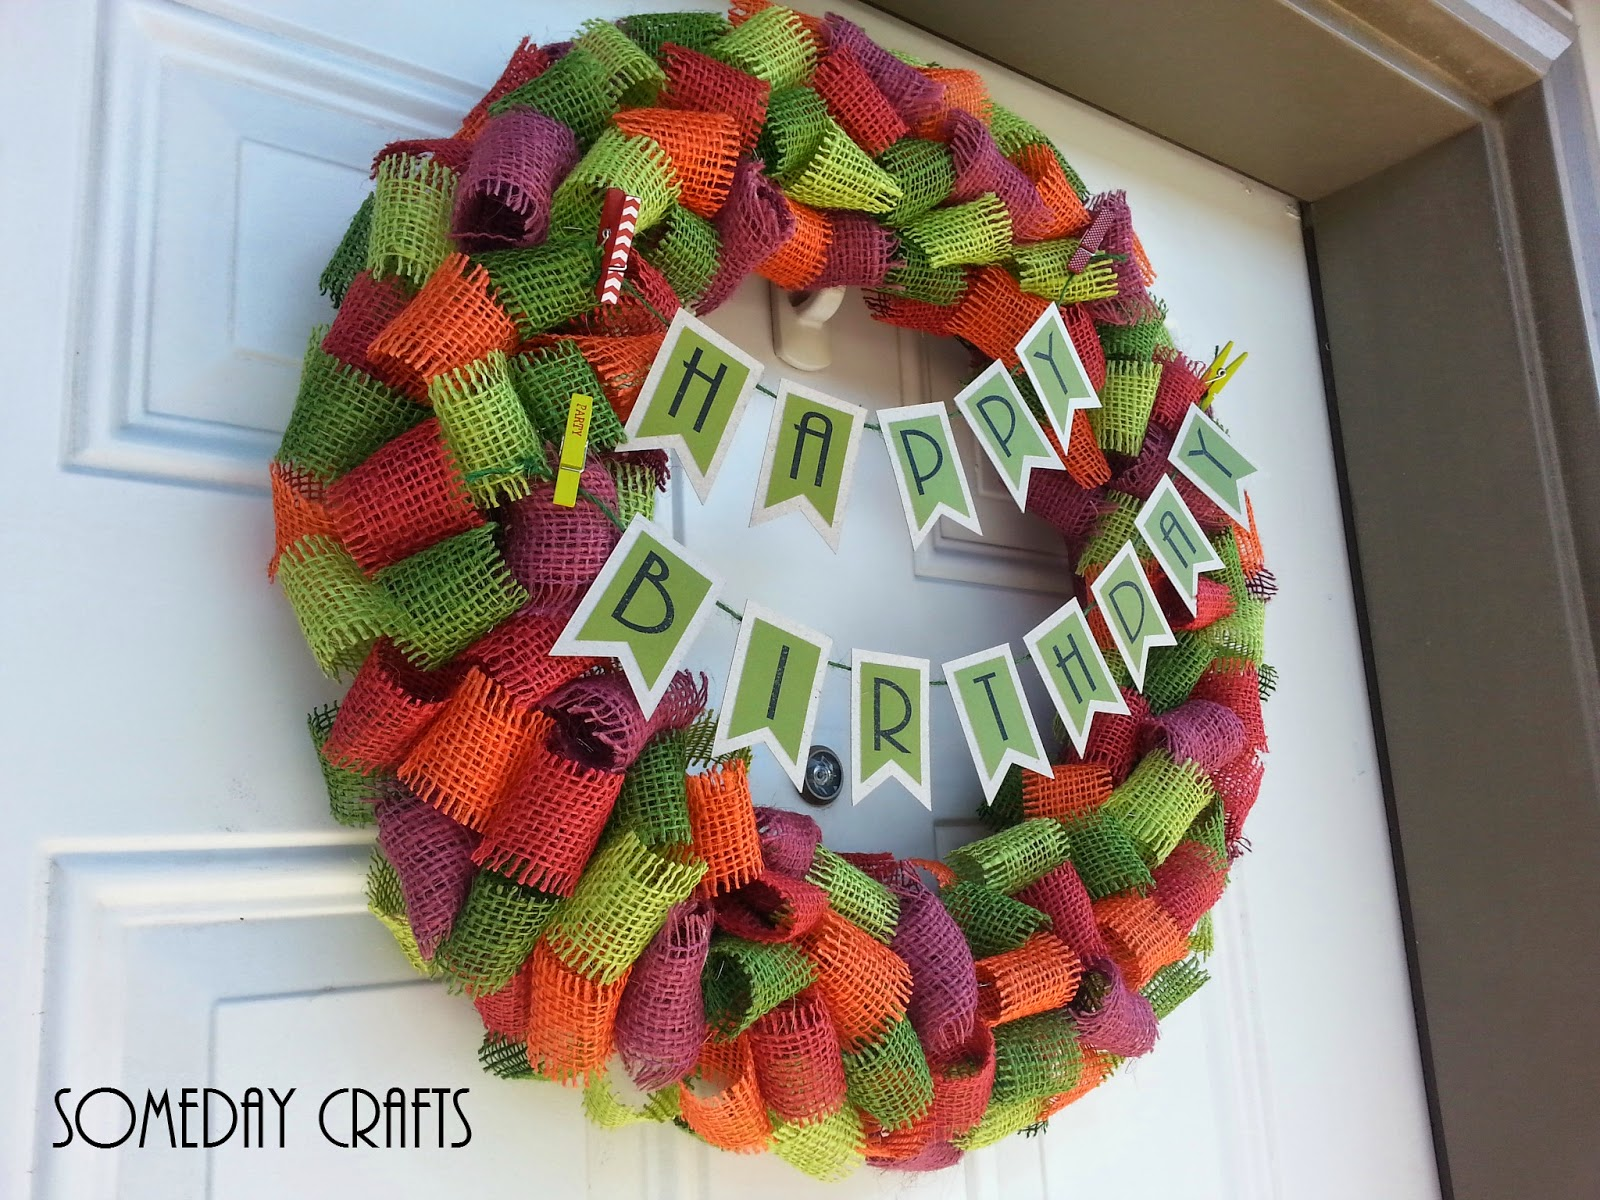 http://somedaycrafts.blogspot.com/2014/07/looped-burlap-ribbon-birthday-wreath.html